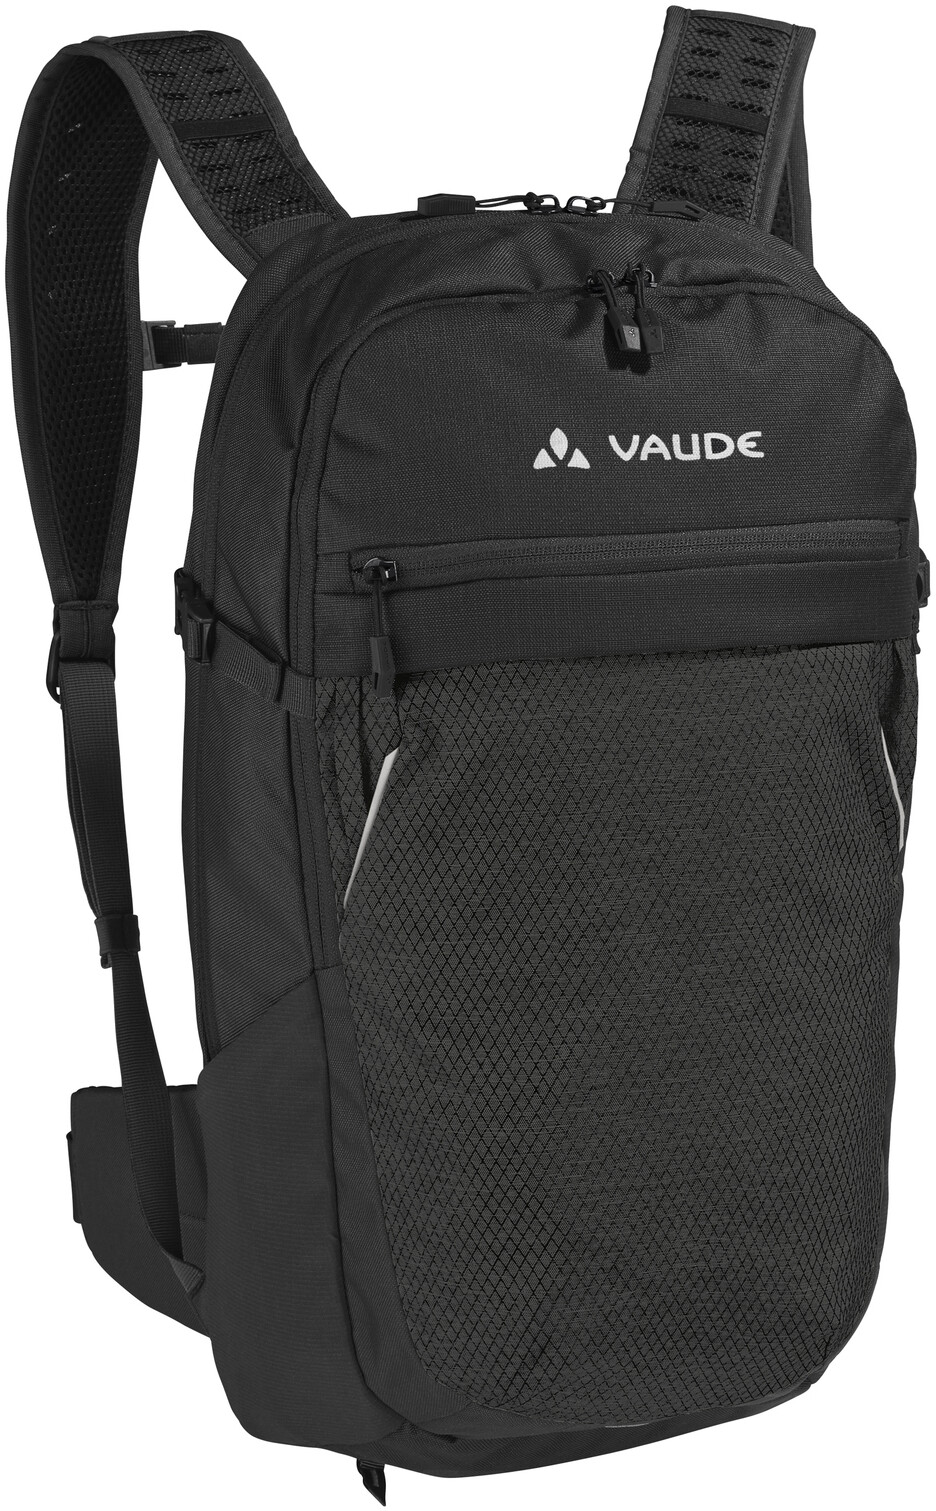 VAUDE Ledro 18 Rygsæk, black (2019) | Travel bags